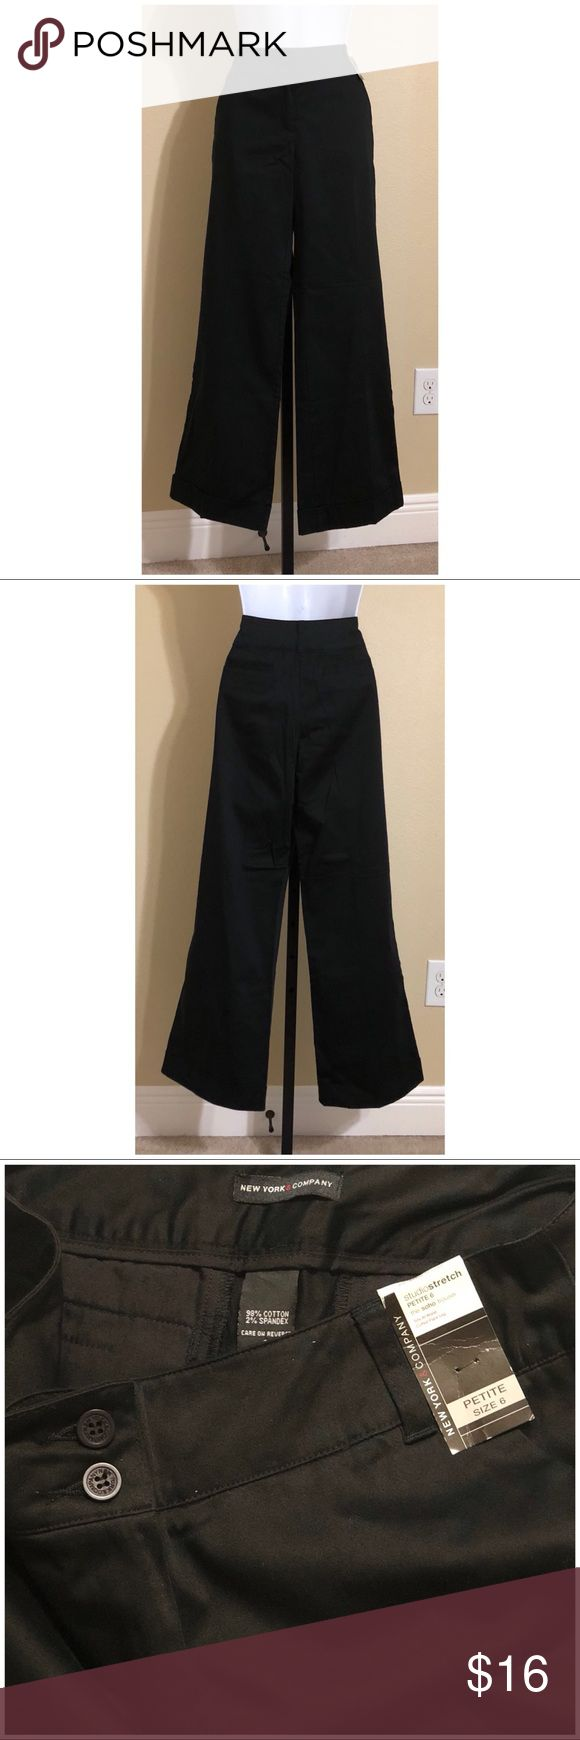 """New York & Co Petite Trousers Size 6P New York & company Petite Women's 'Soho Trouser"""" Pants Size 6P Black Color Front Zip 2 External Vertically Stacked Button Closure 2 Front Pockets 2 Faux Rear Pockets Belt Loops Stretch Cuffed Flare Leg Sits At The Waist Machine Washable 98% Cotton 2% Spandex Inseam Approx. 28 Inches Rise Approx. 10 Inches Waist Approx. 28 Inches Hips Approx. 38 Inches Cuff Approx. 21 Inches Please Measure To Ensure A Proper Fit New With Tag New York & Company Pants…"""